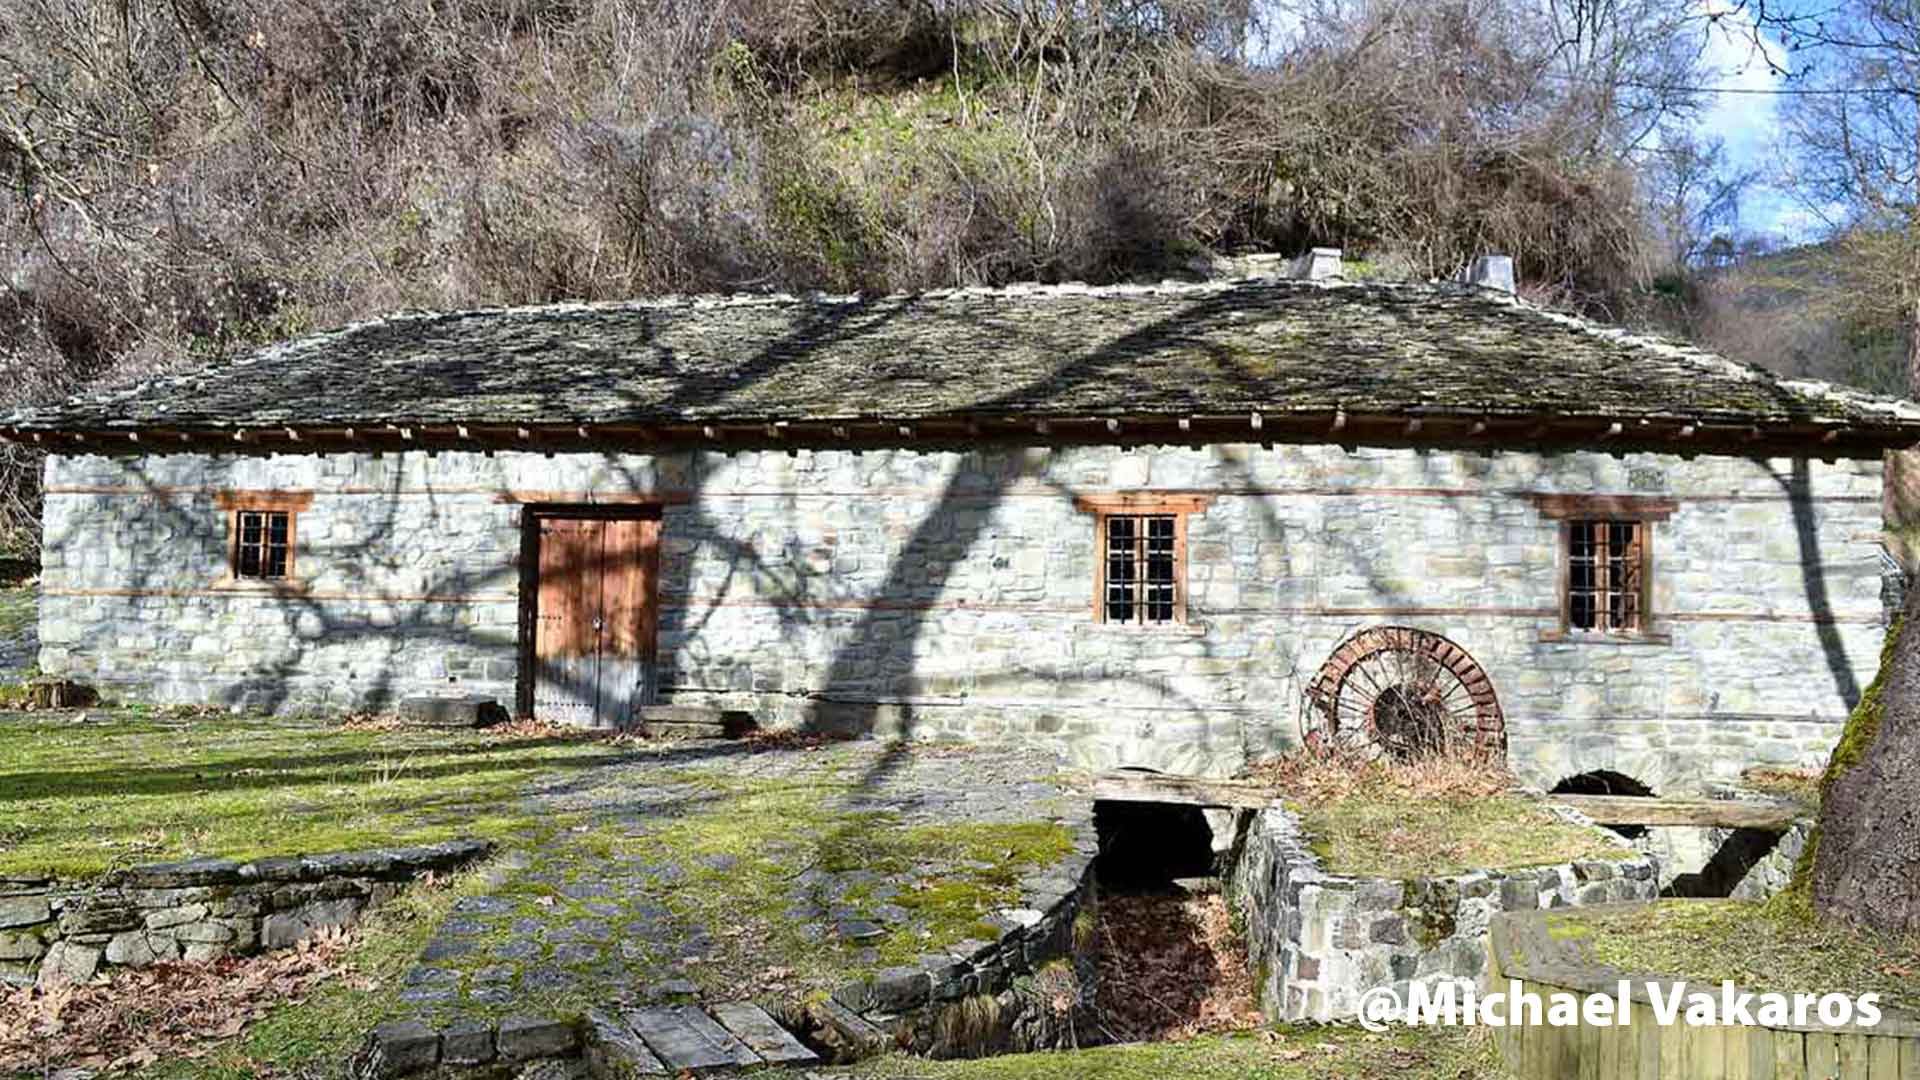 The well-known watermill of Ginas